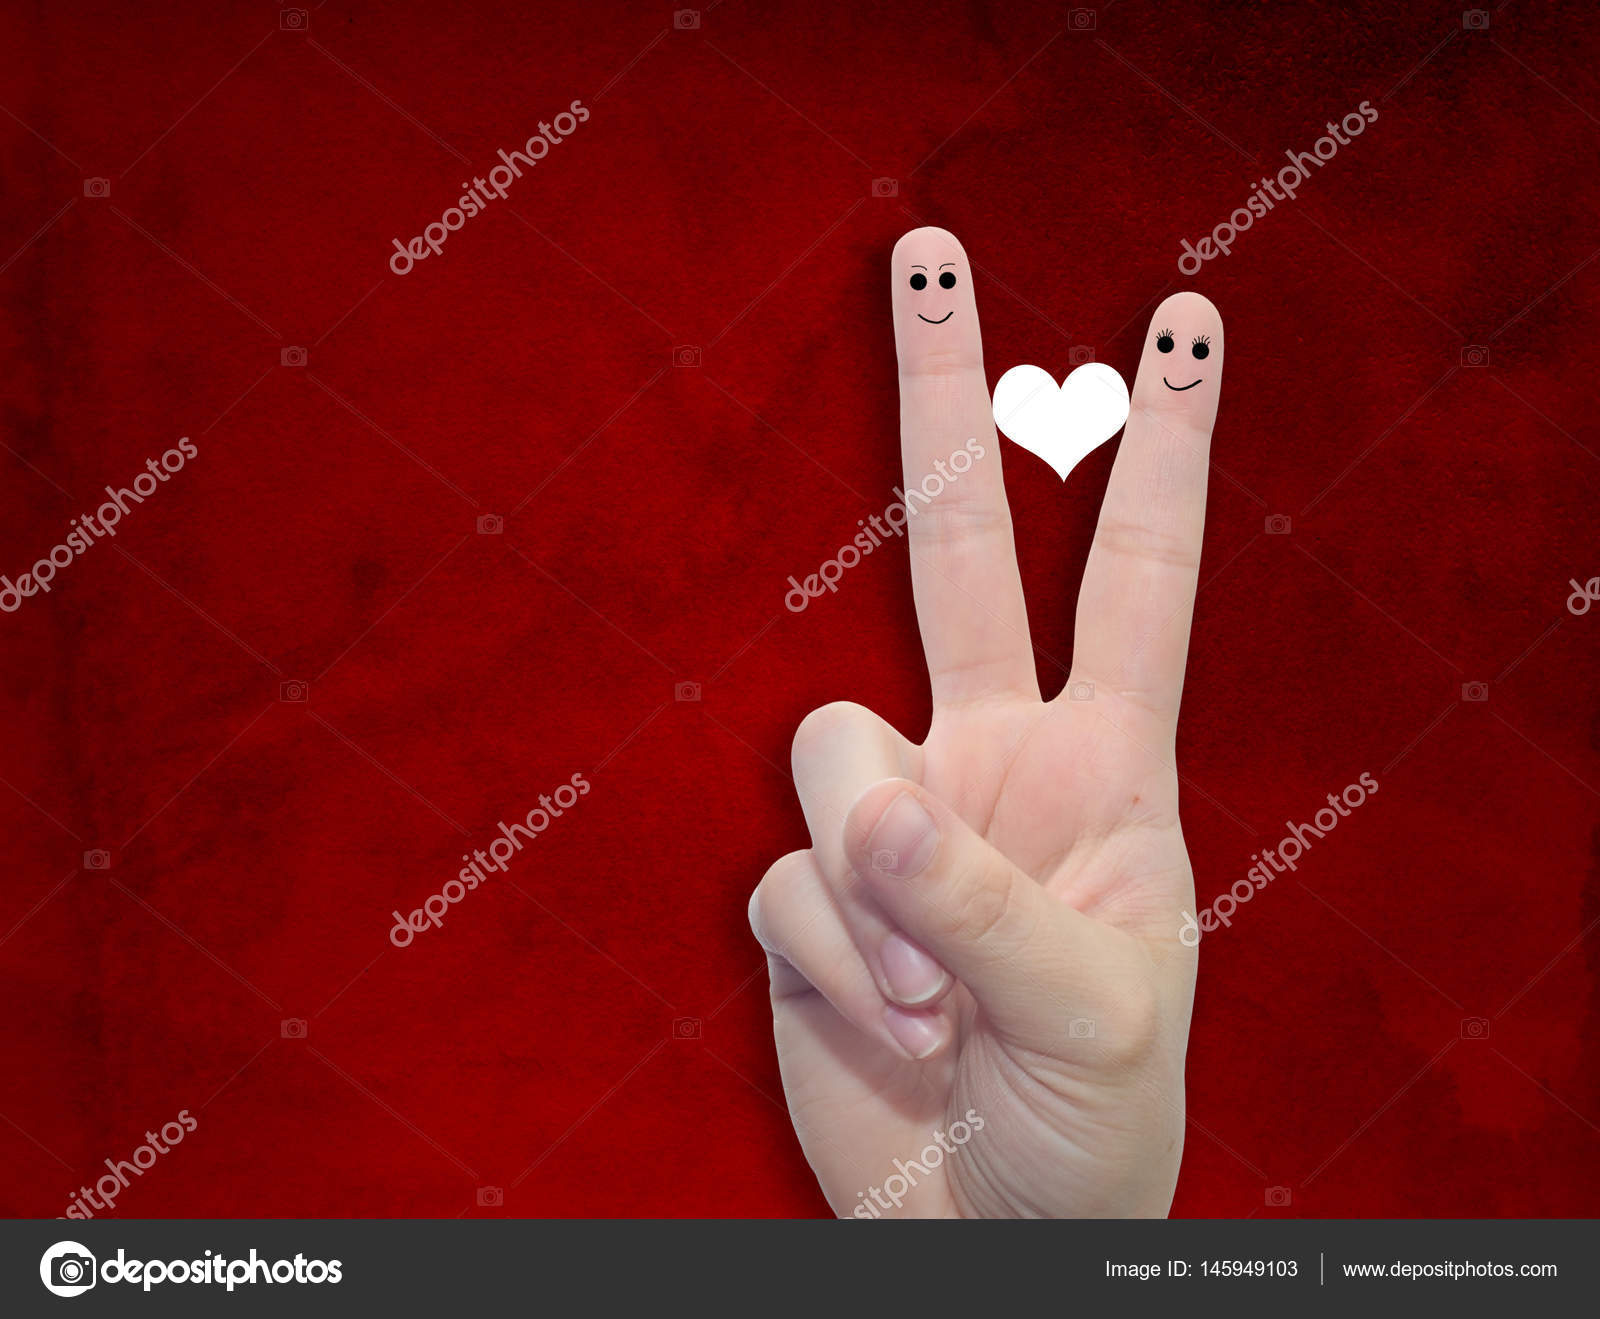 Fingers With Heart And Faces Stock Photo Design36 145949103